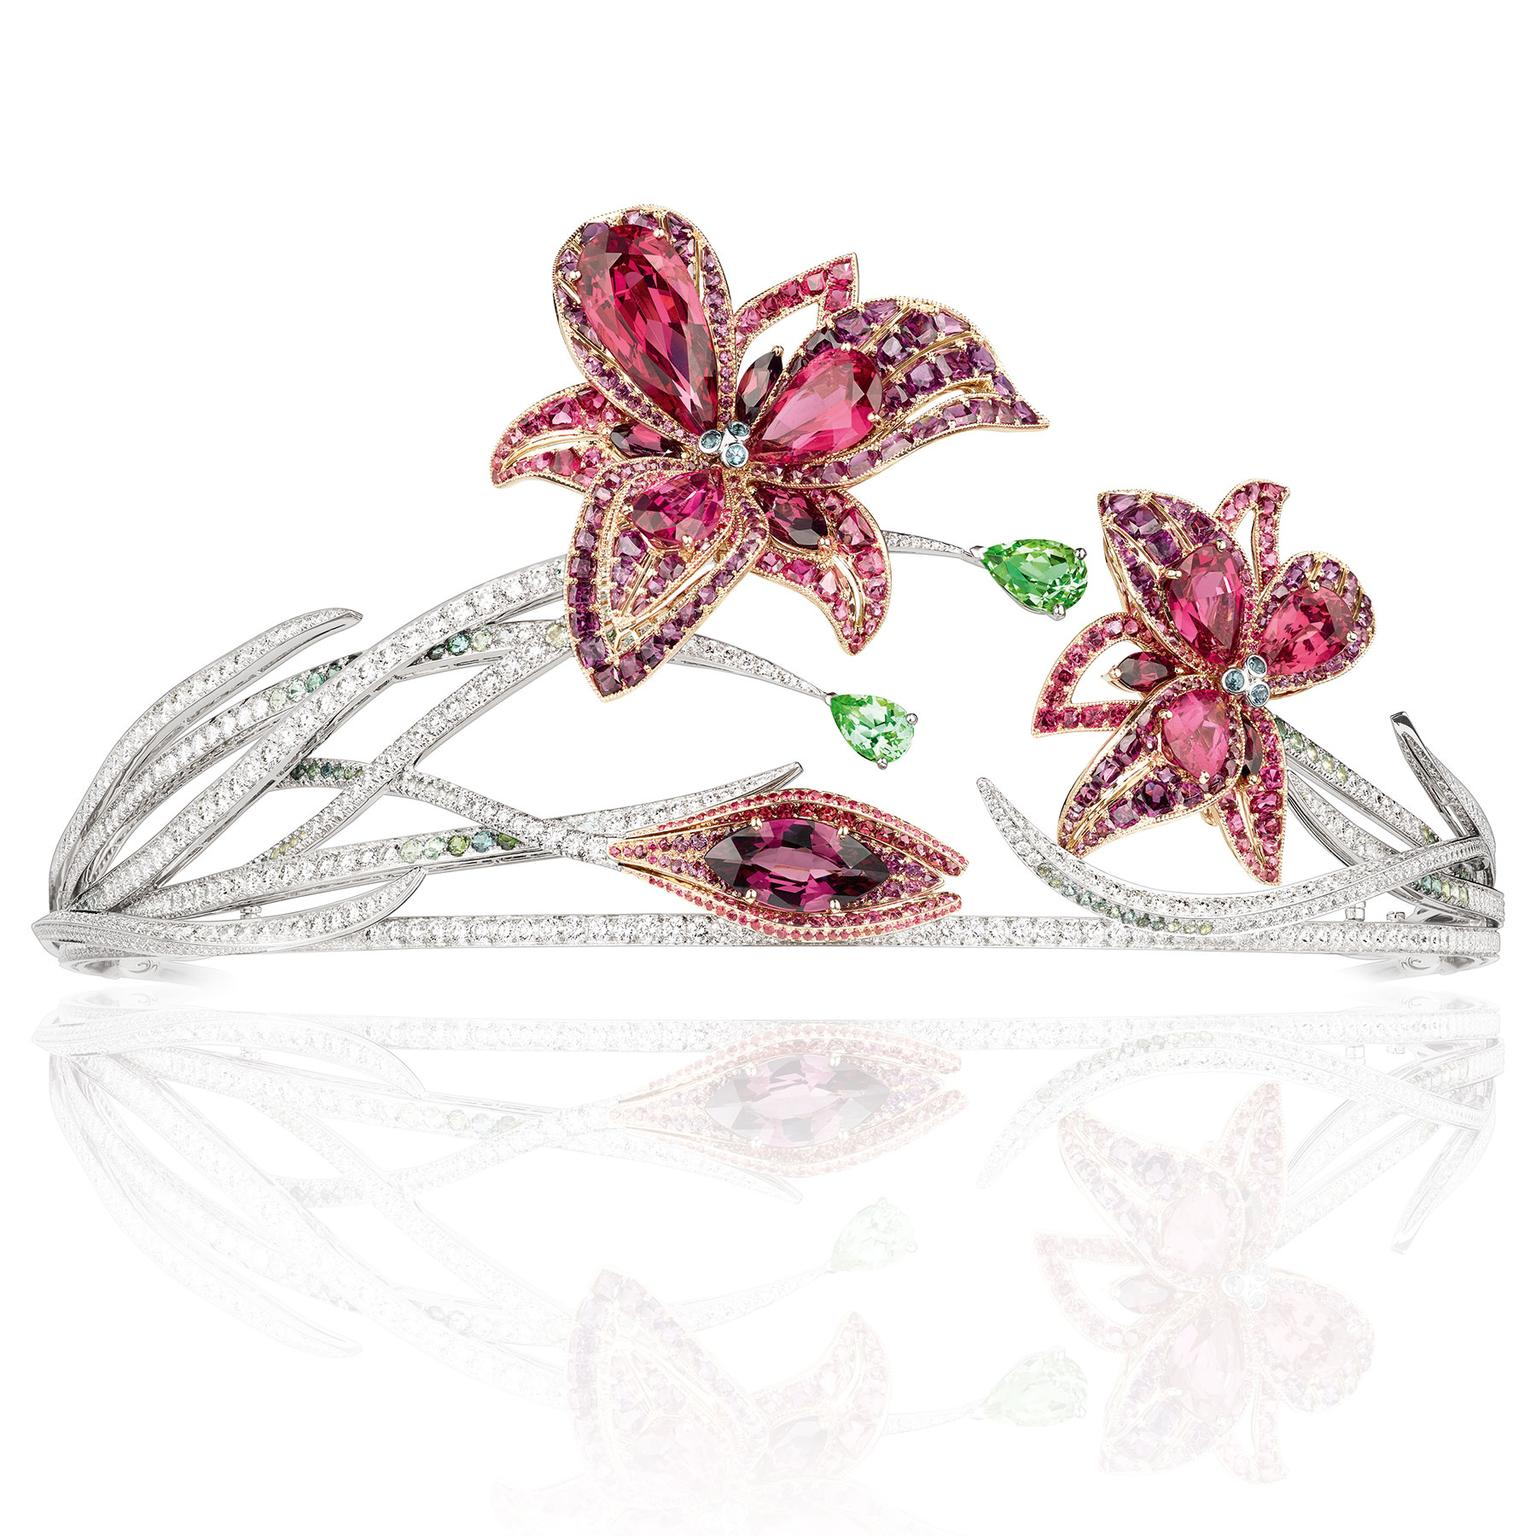 La Nature de Chaumet Passion Incarnat red spinel, garnet, tourmaline and diamond lily tiara